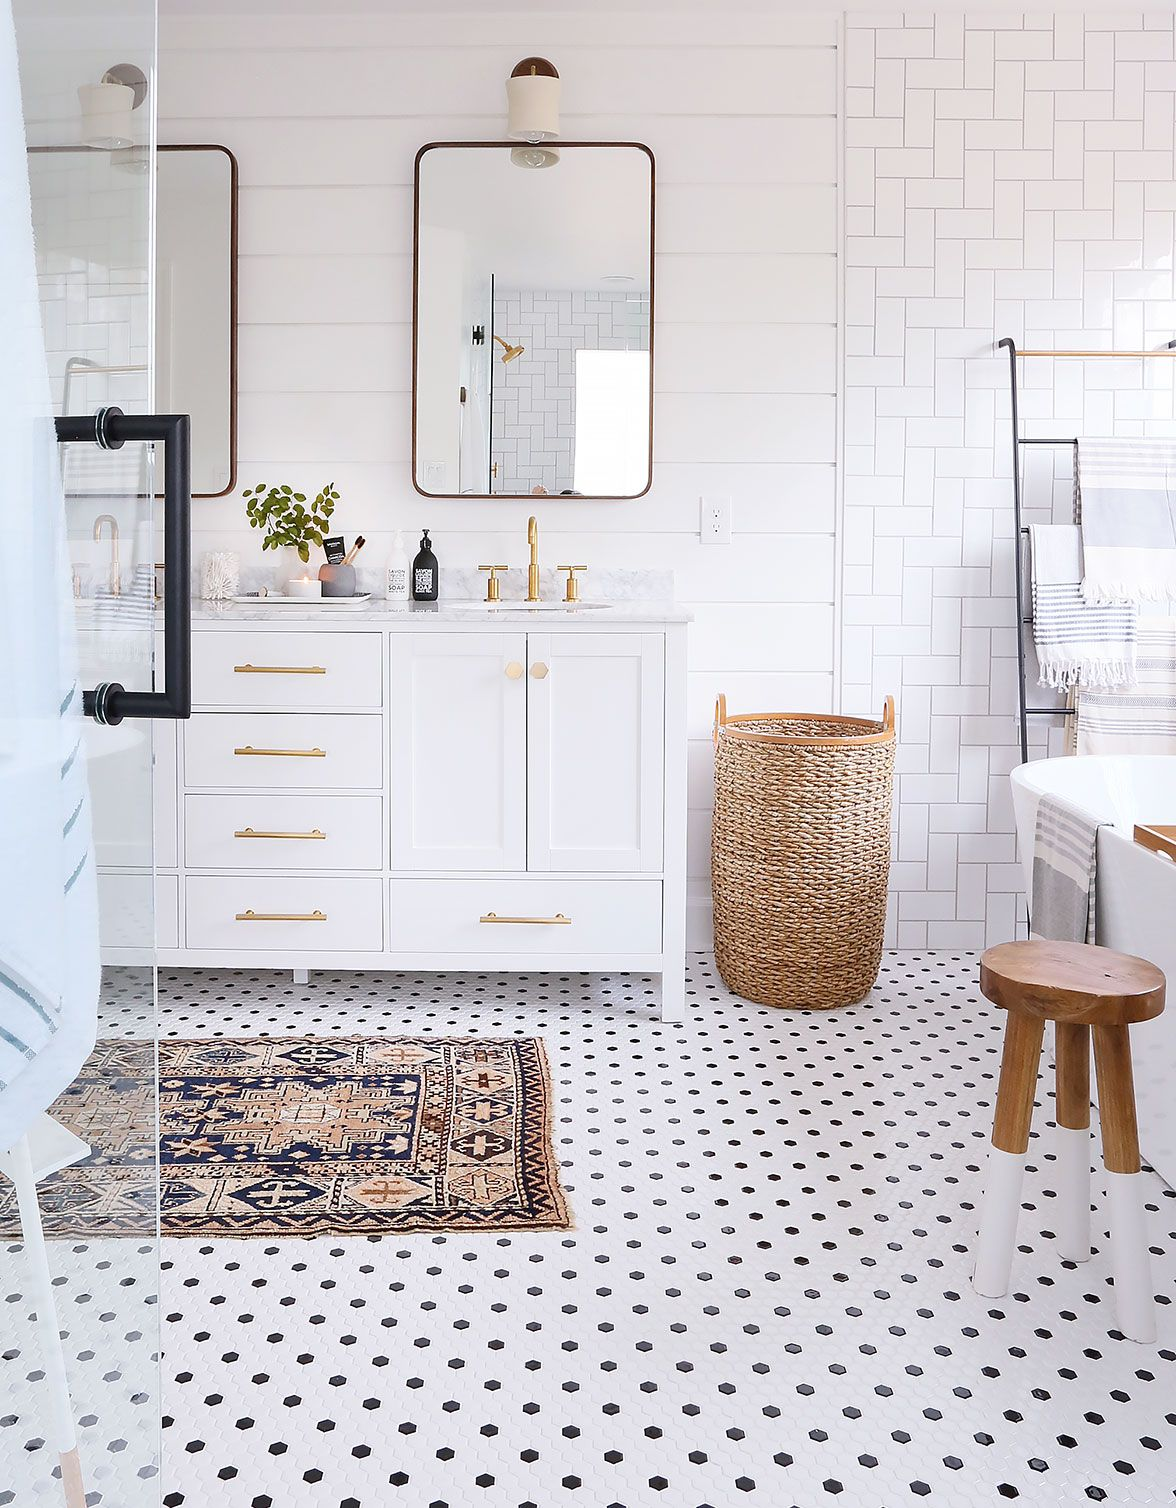 Choosing Bathroom Colors and Product for Remodel | Small bathroom ...